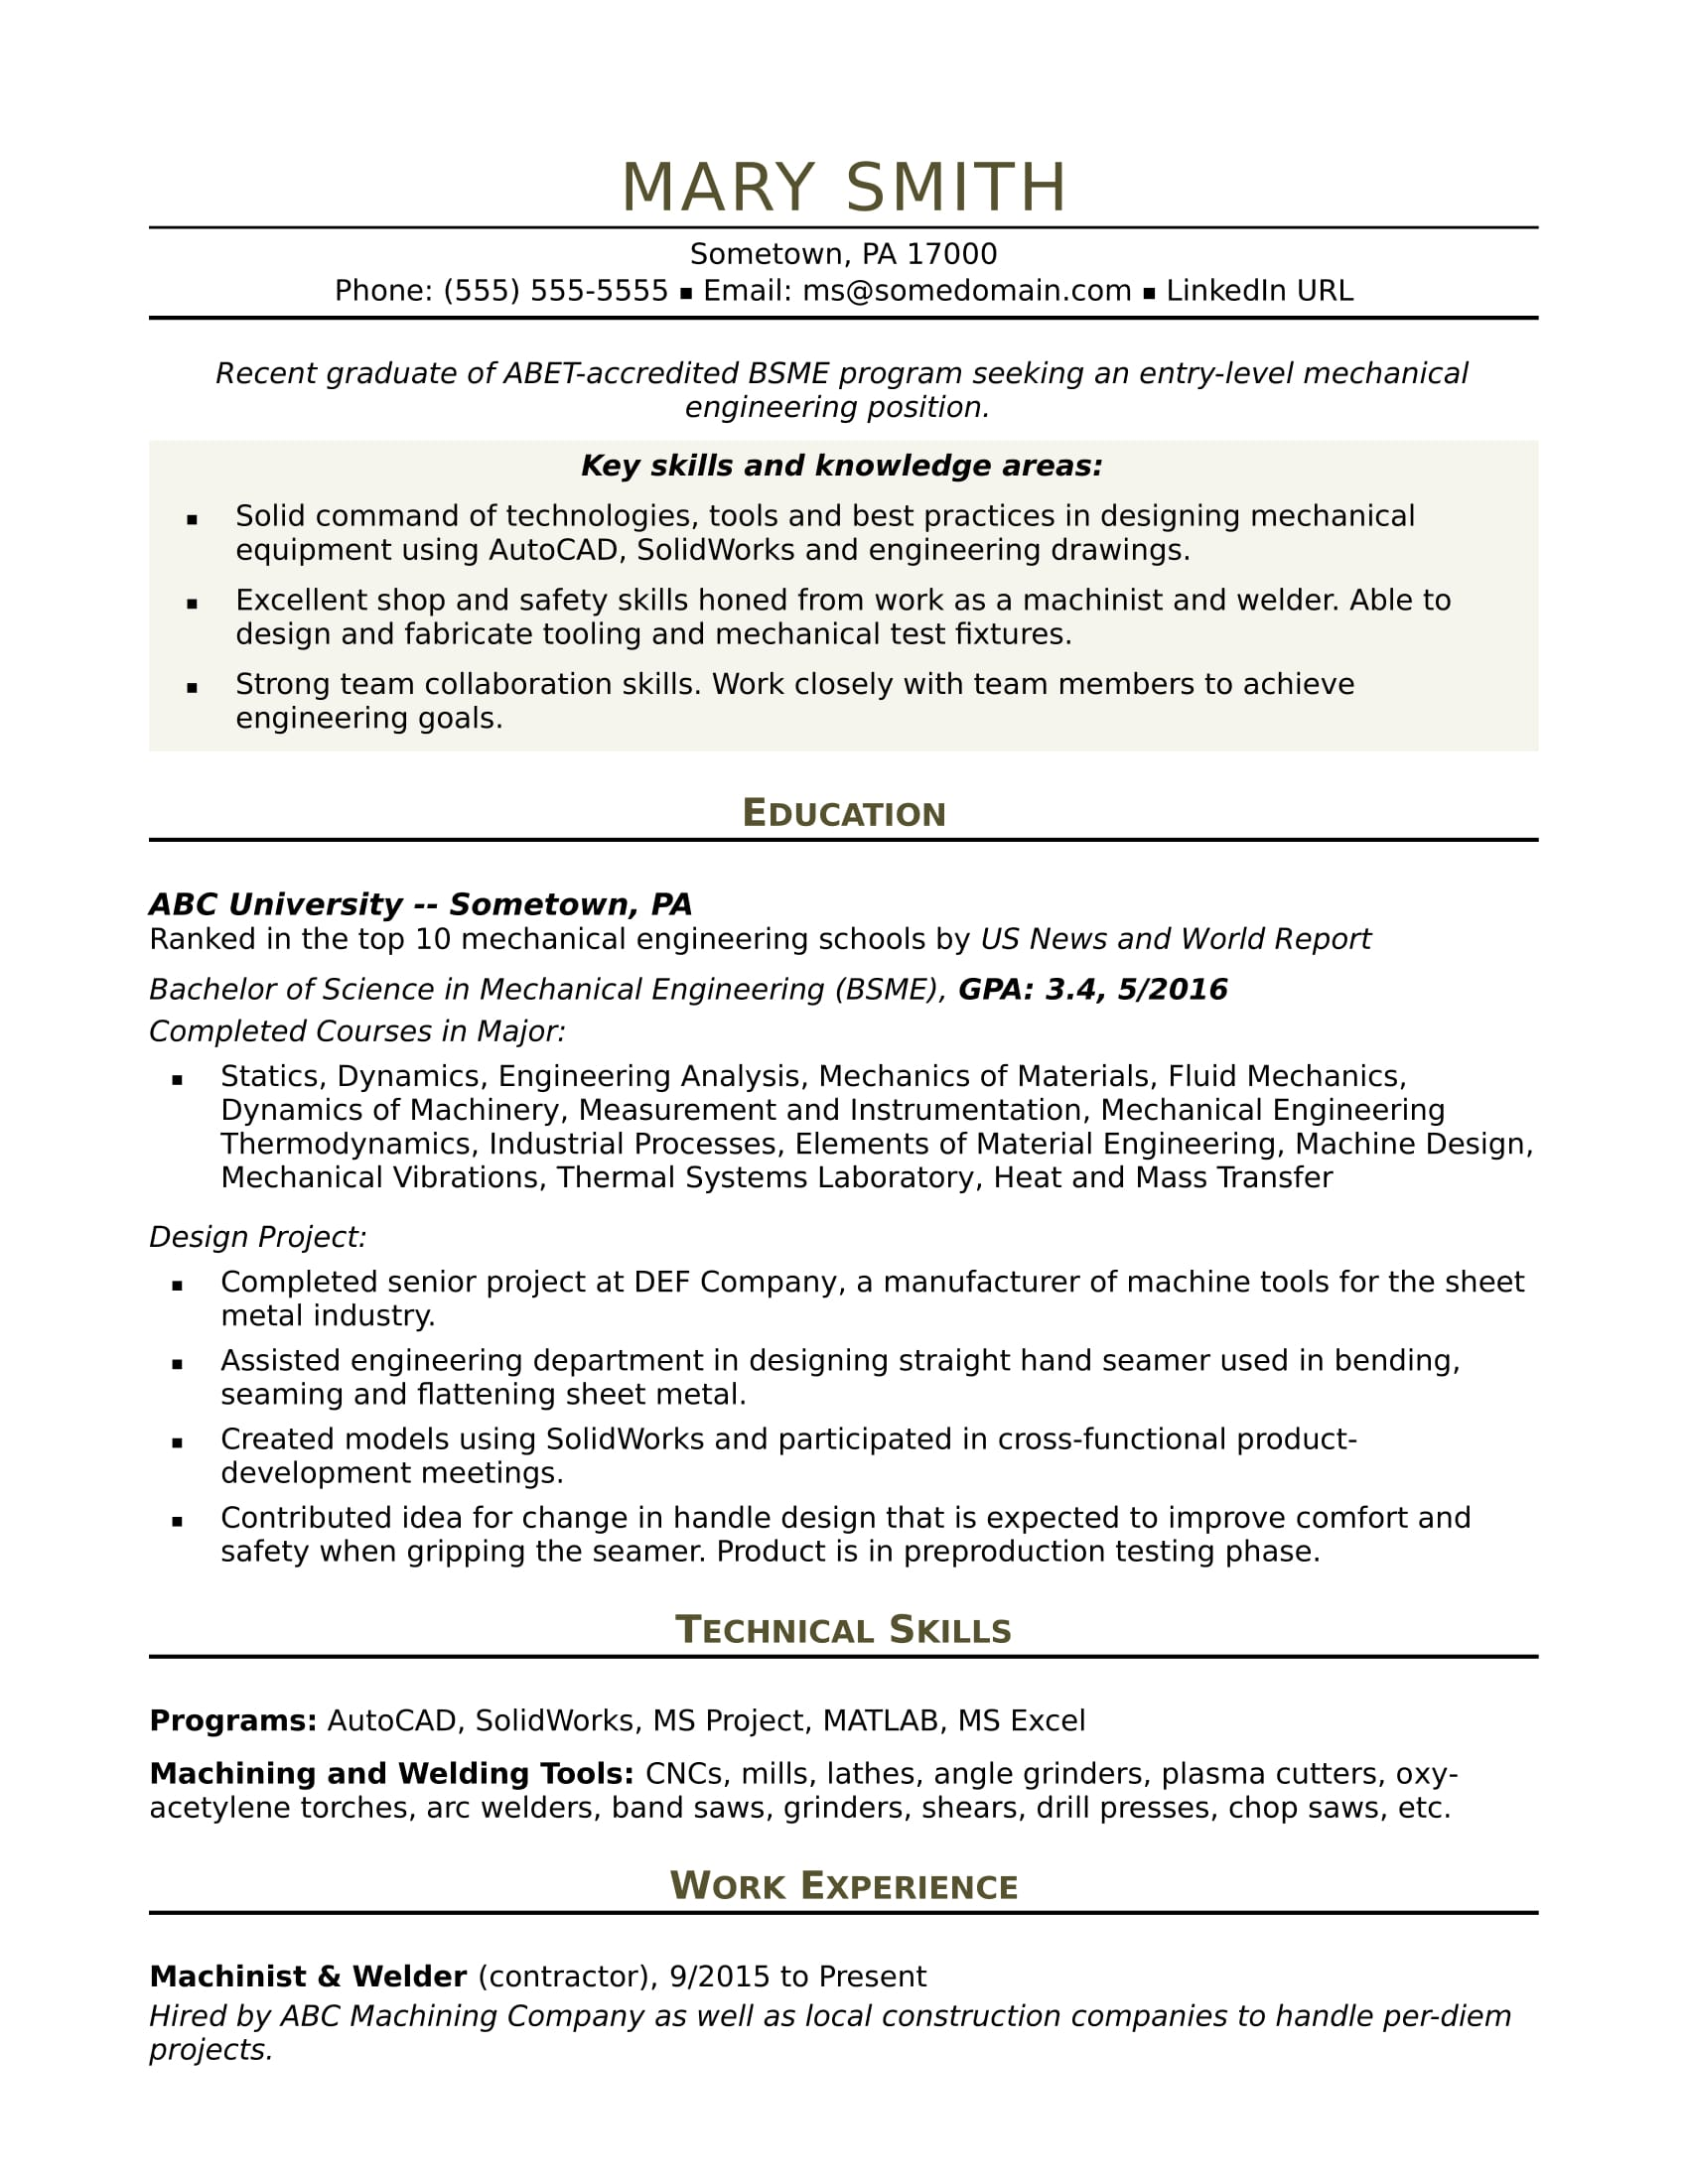 Sample Resume For An Entry Level Mechanical Engineer  Resume Entry Level